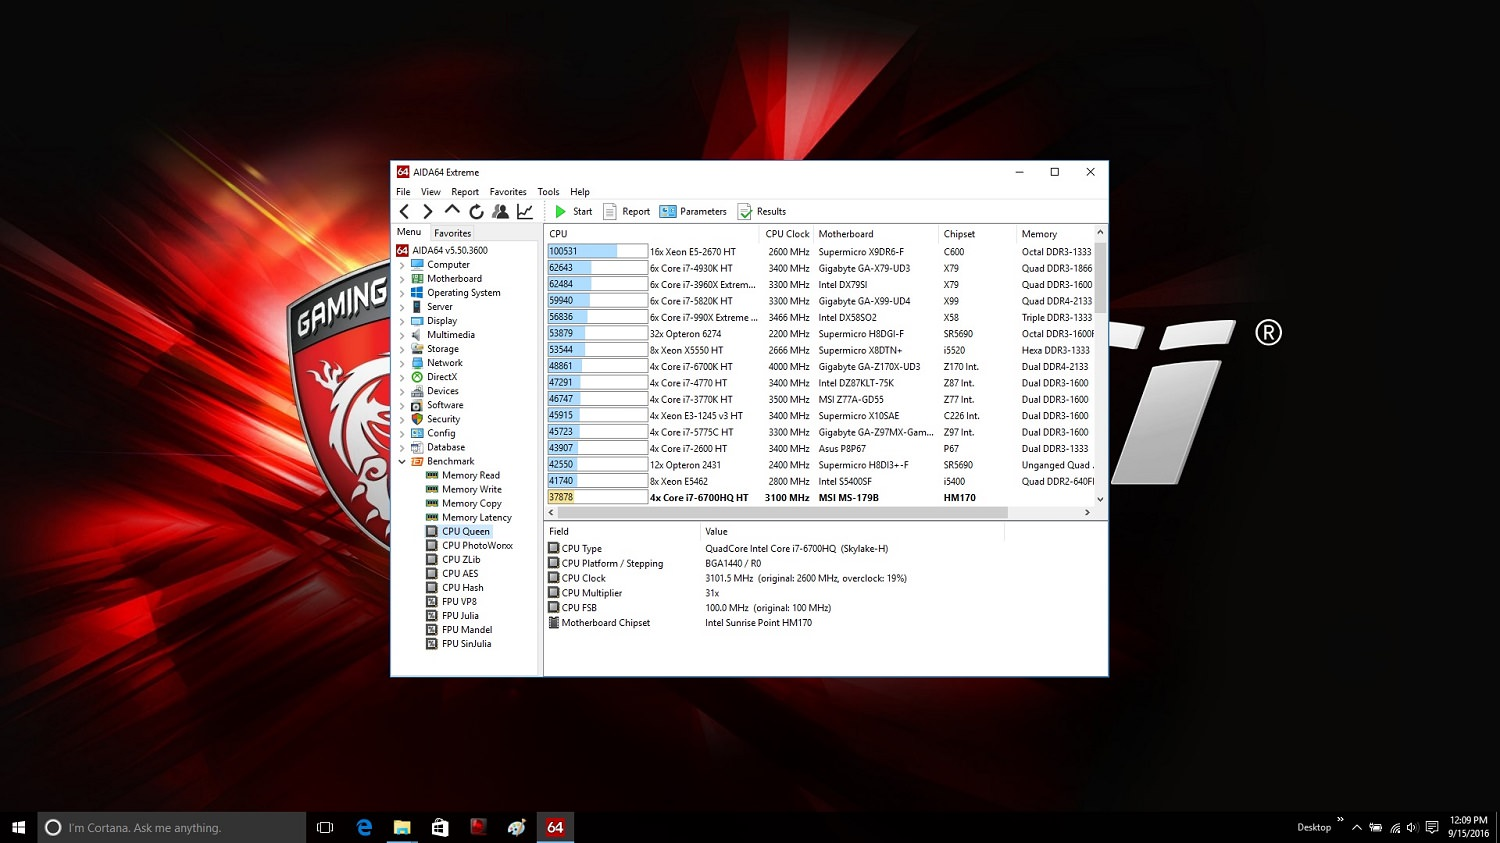 MSI GE72VR 6RF AIDA 64 CPU Queen